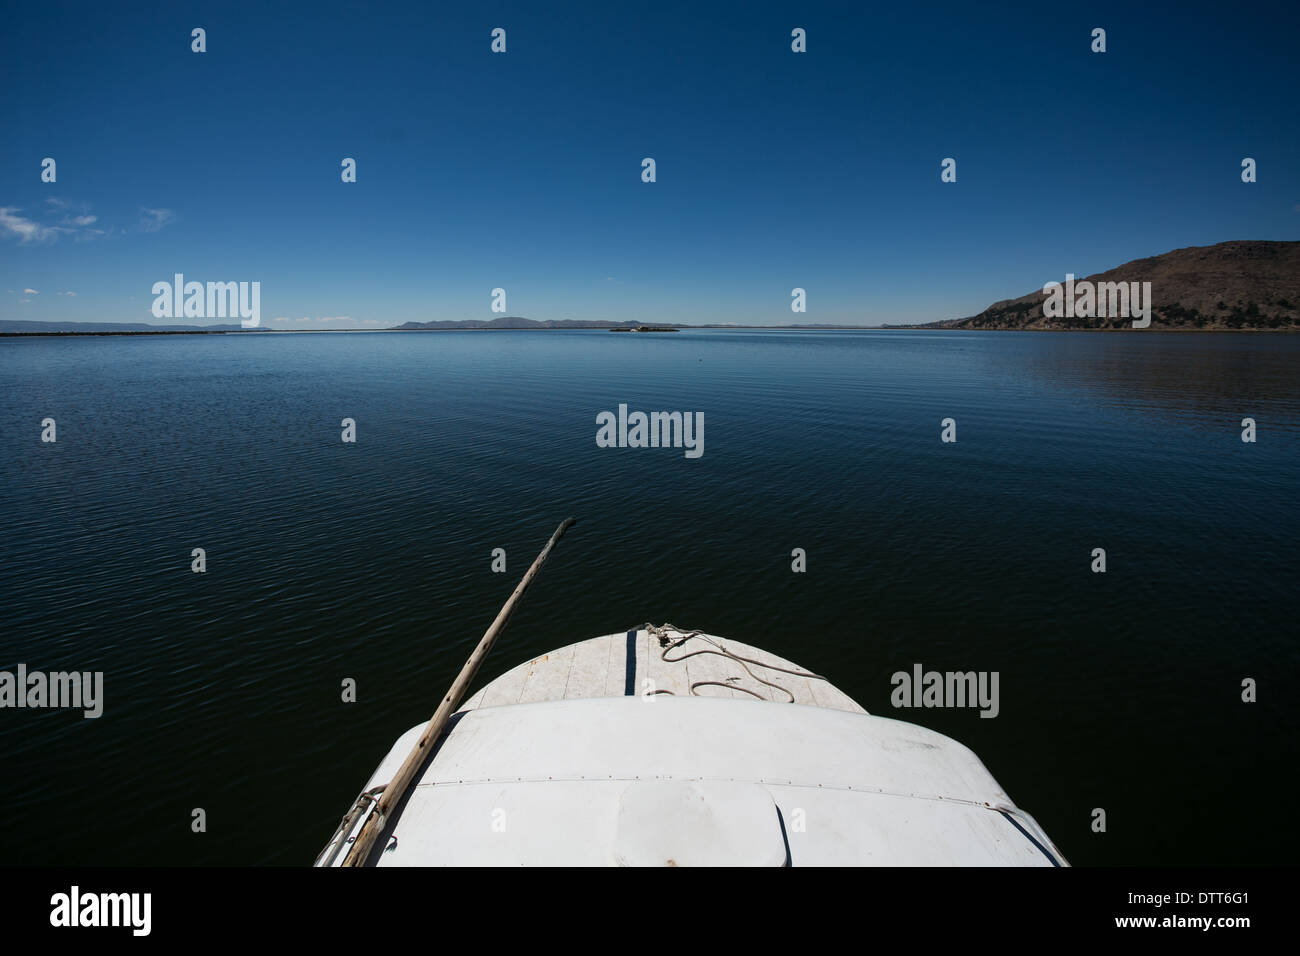 going to the islands in  lake titicaca / titikaka by boat - prow of a white boat  high horizon, 4000 above sea level - Stock Image